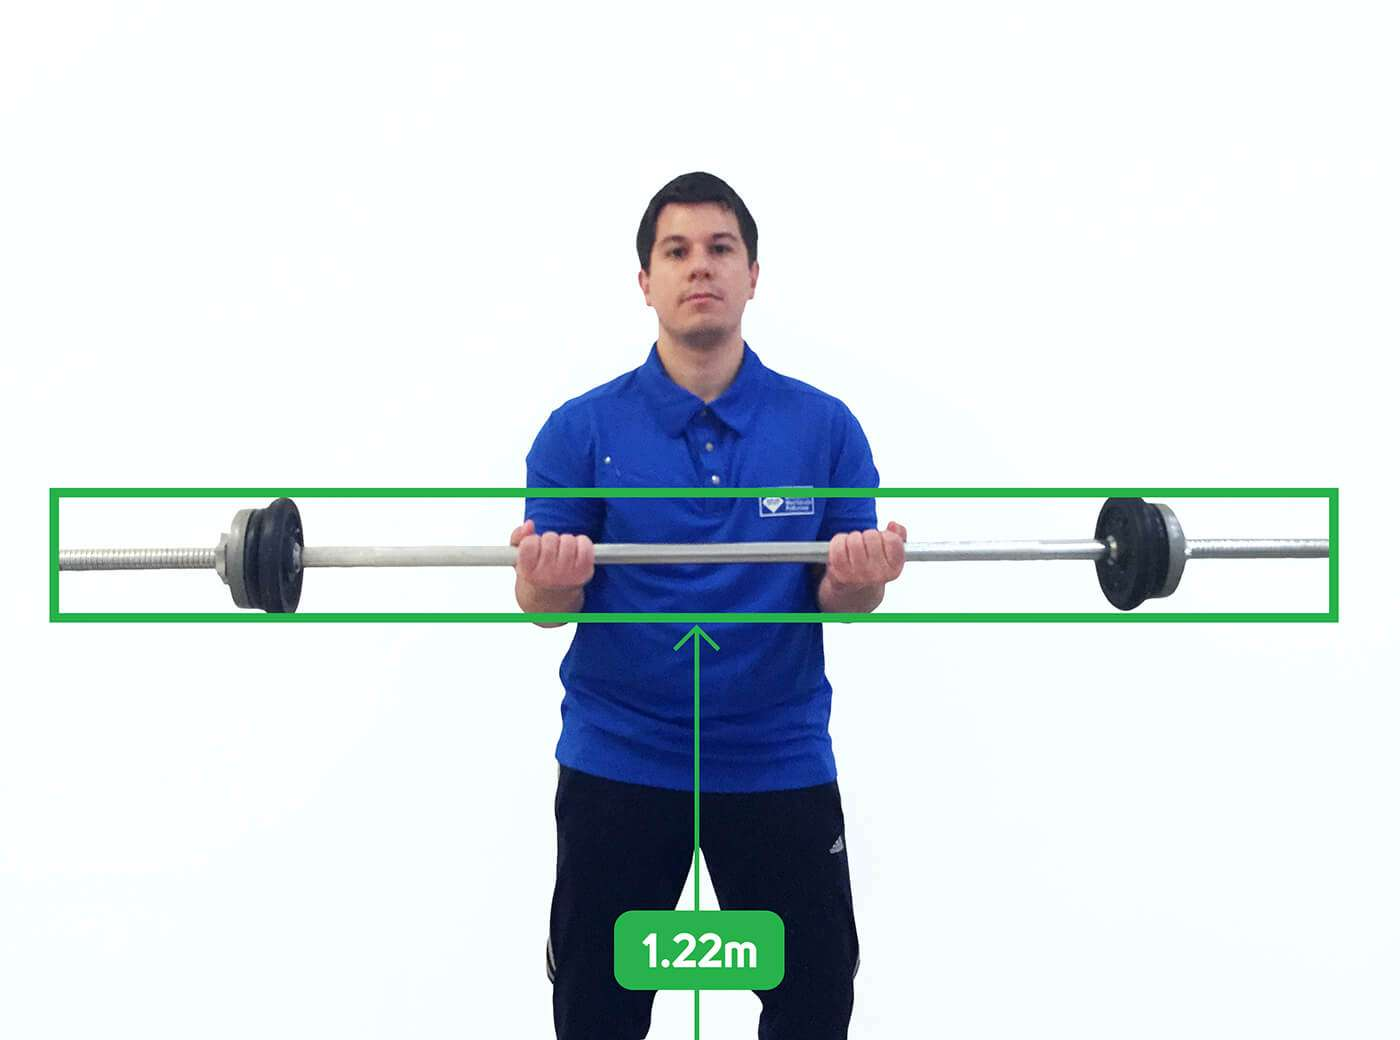 Kinect Weight Lifting Bar Detection - Vangos Pterneas